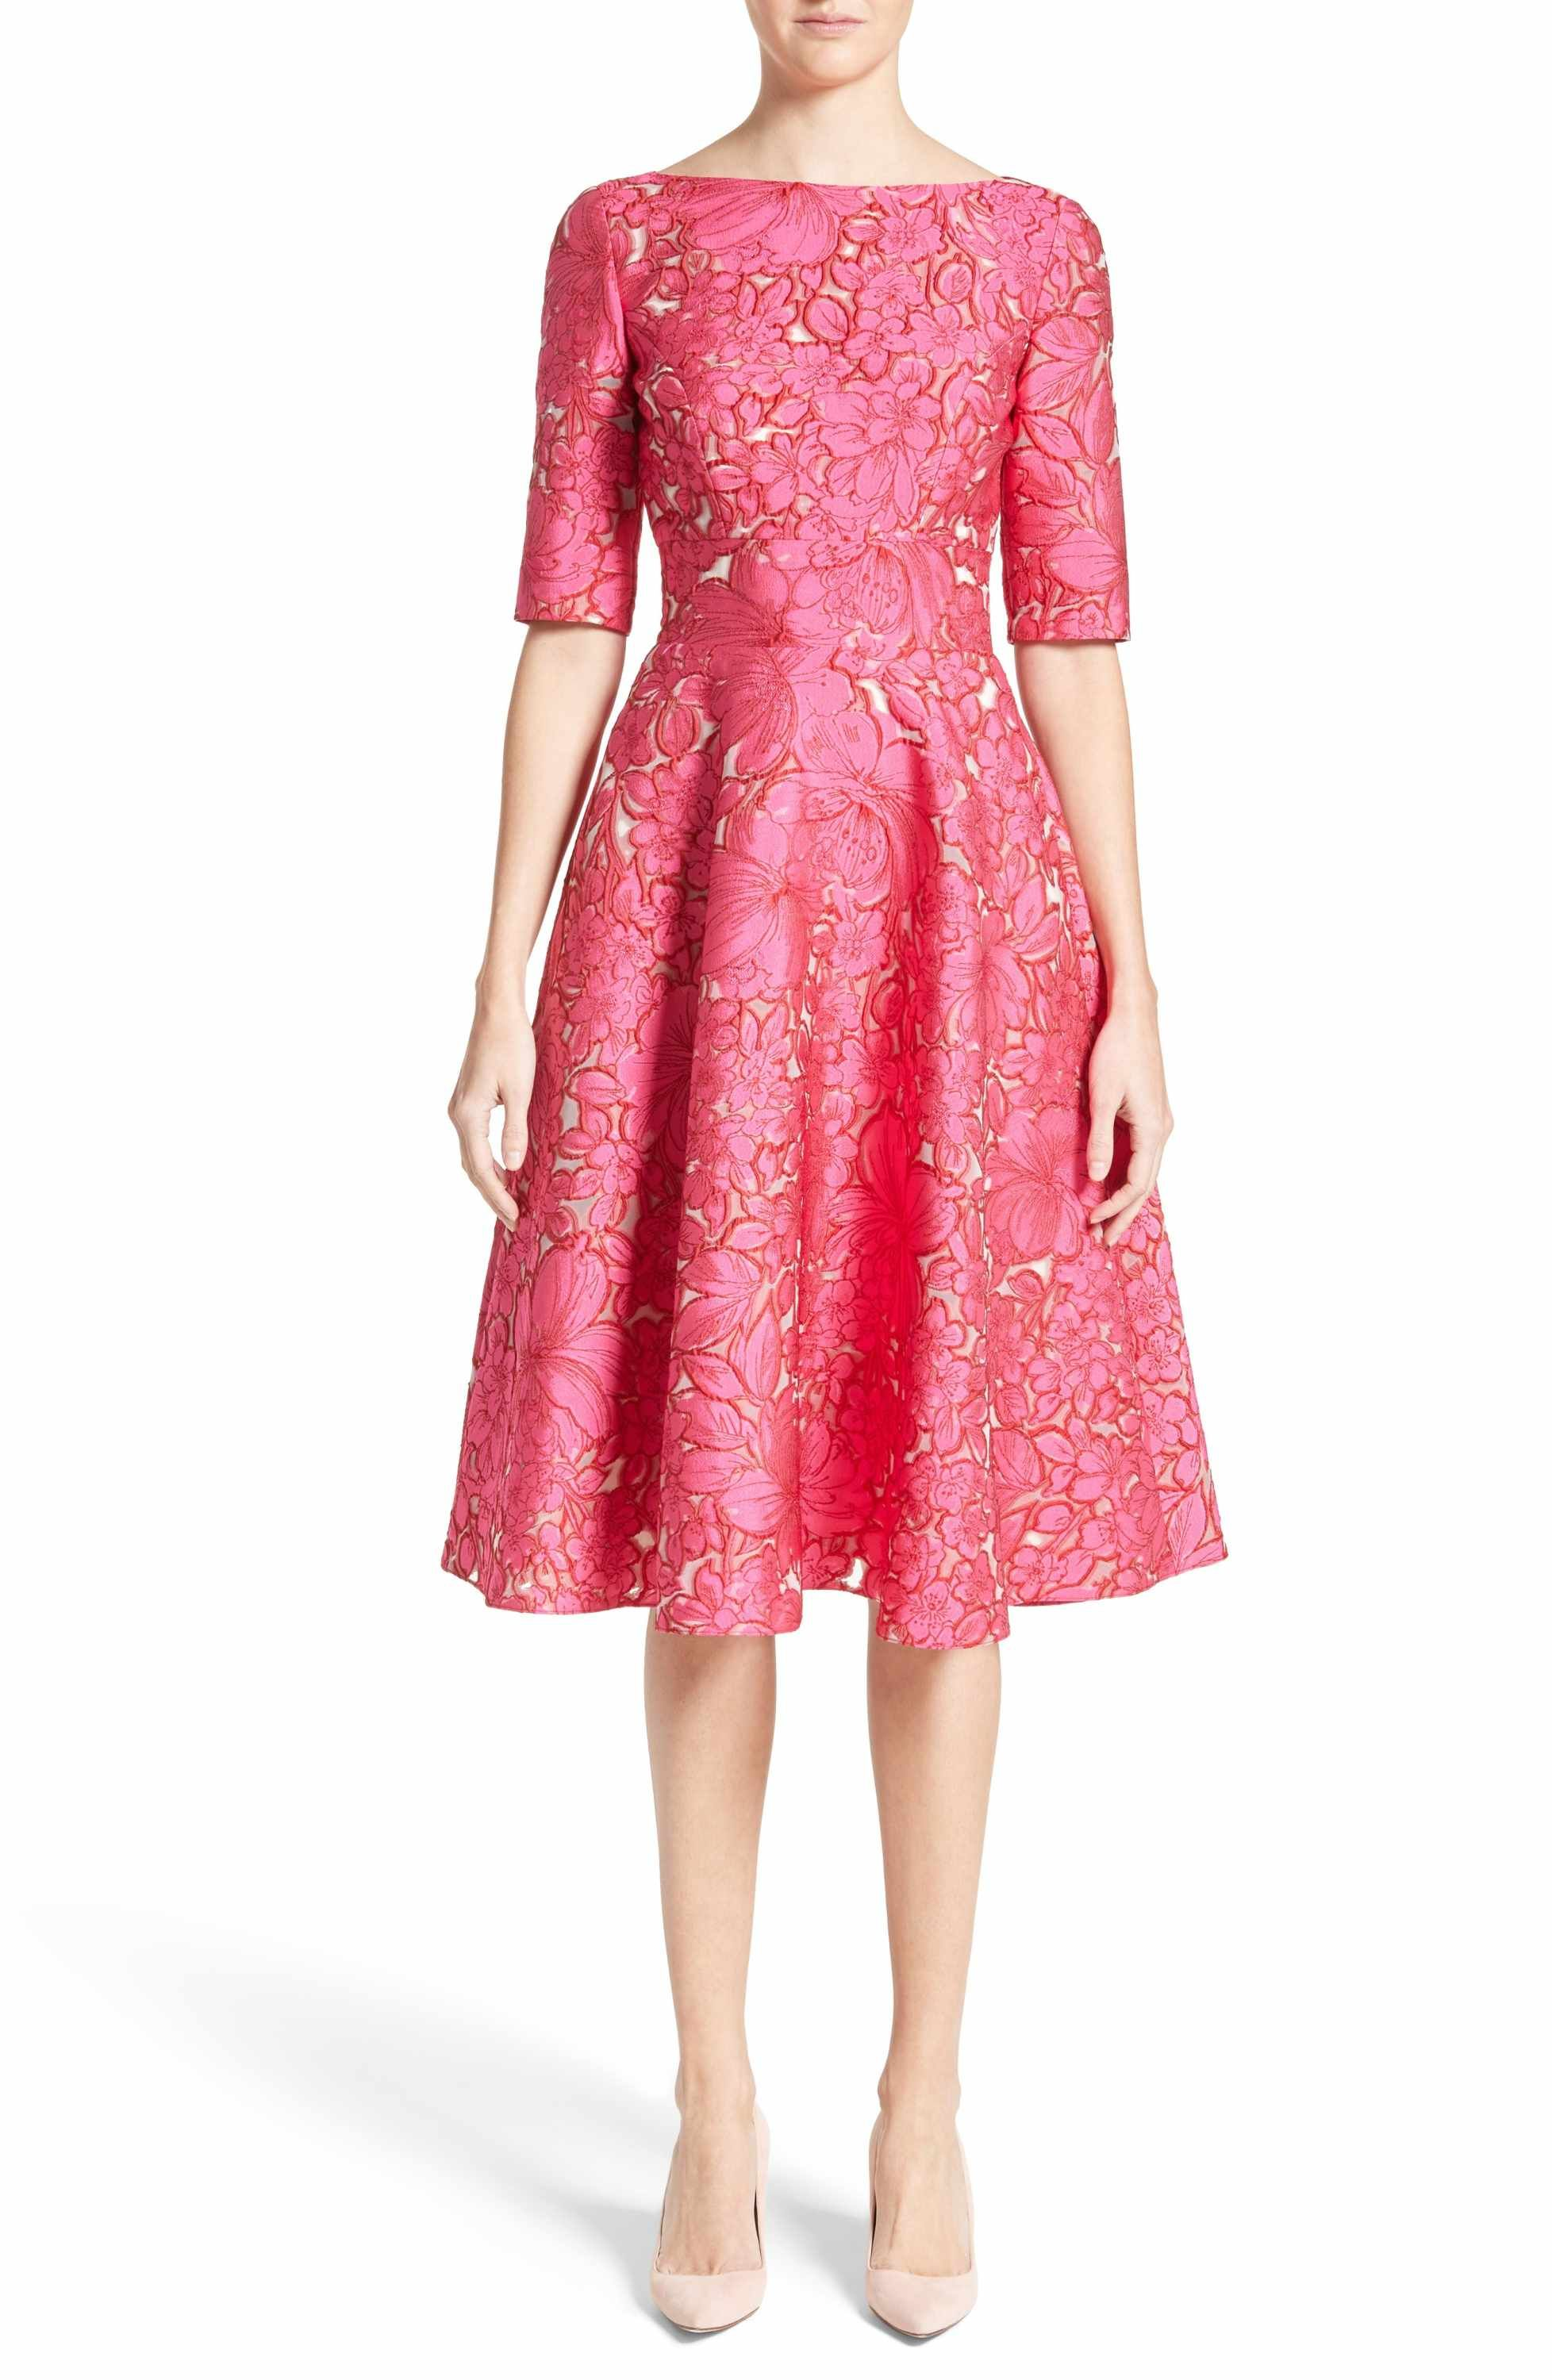 f83507e140 Main Image - Lela Rose Floral Fil Coupé Fit   Flare Dress